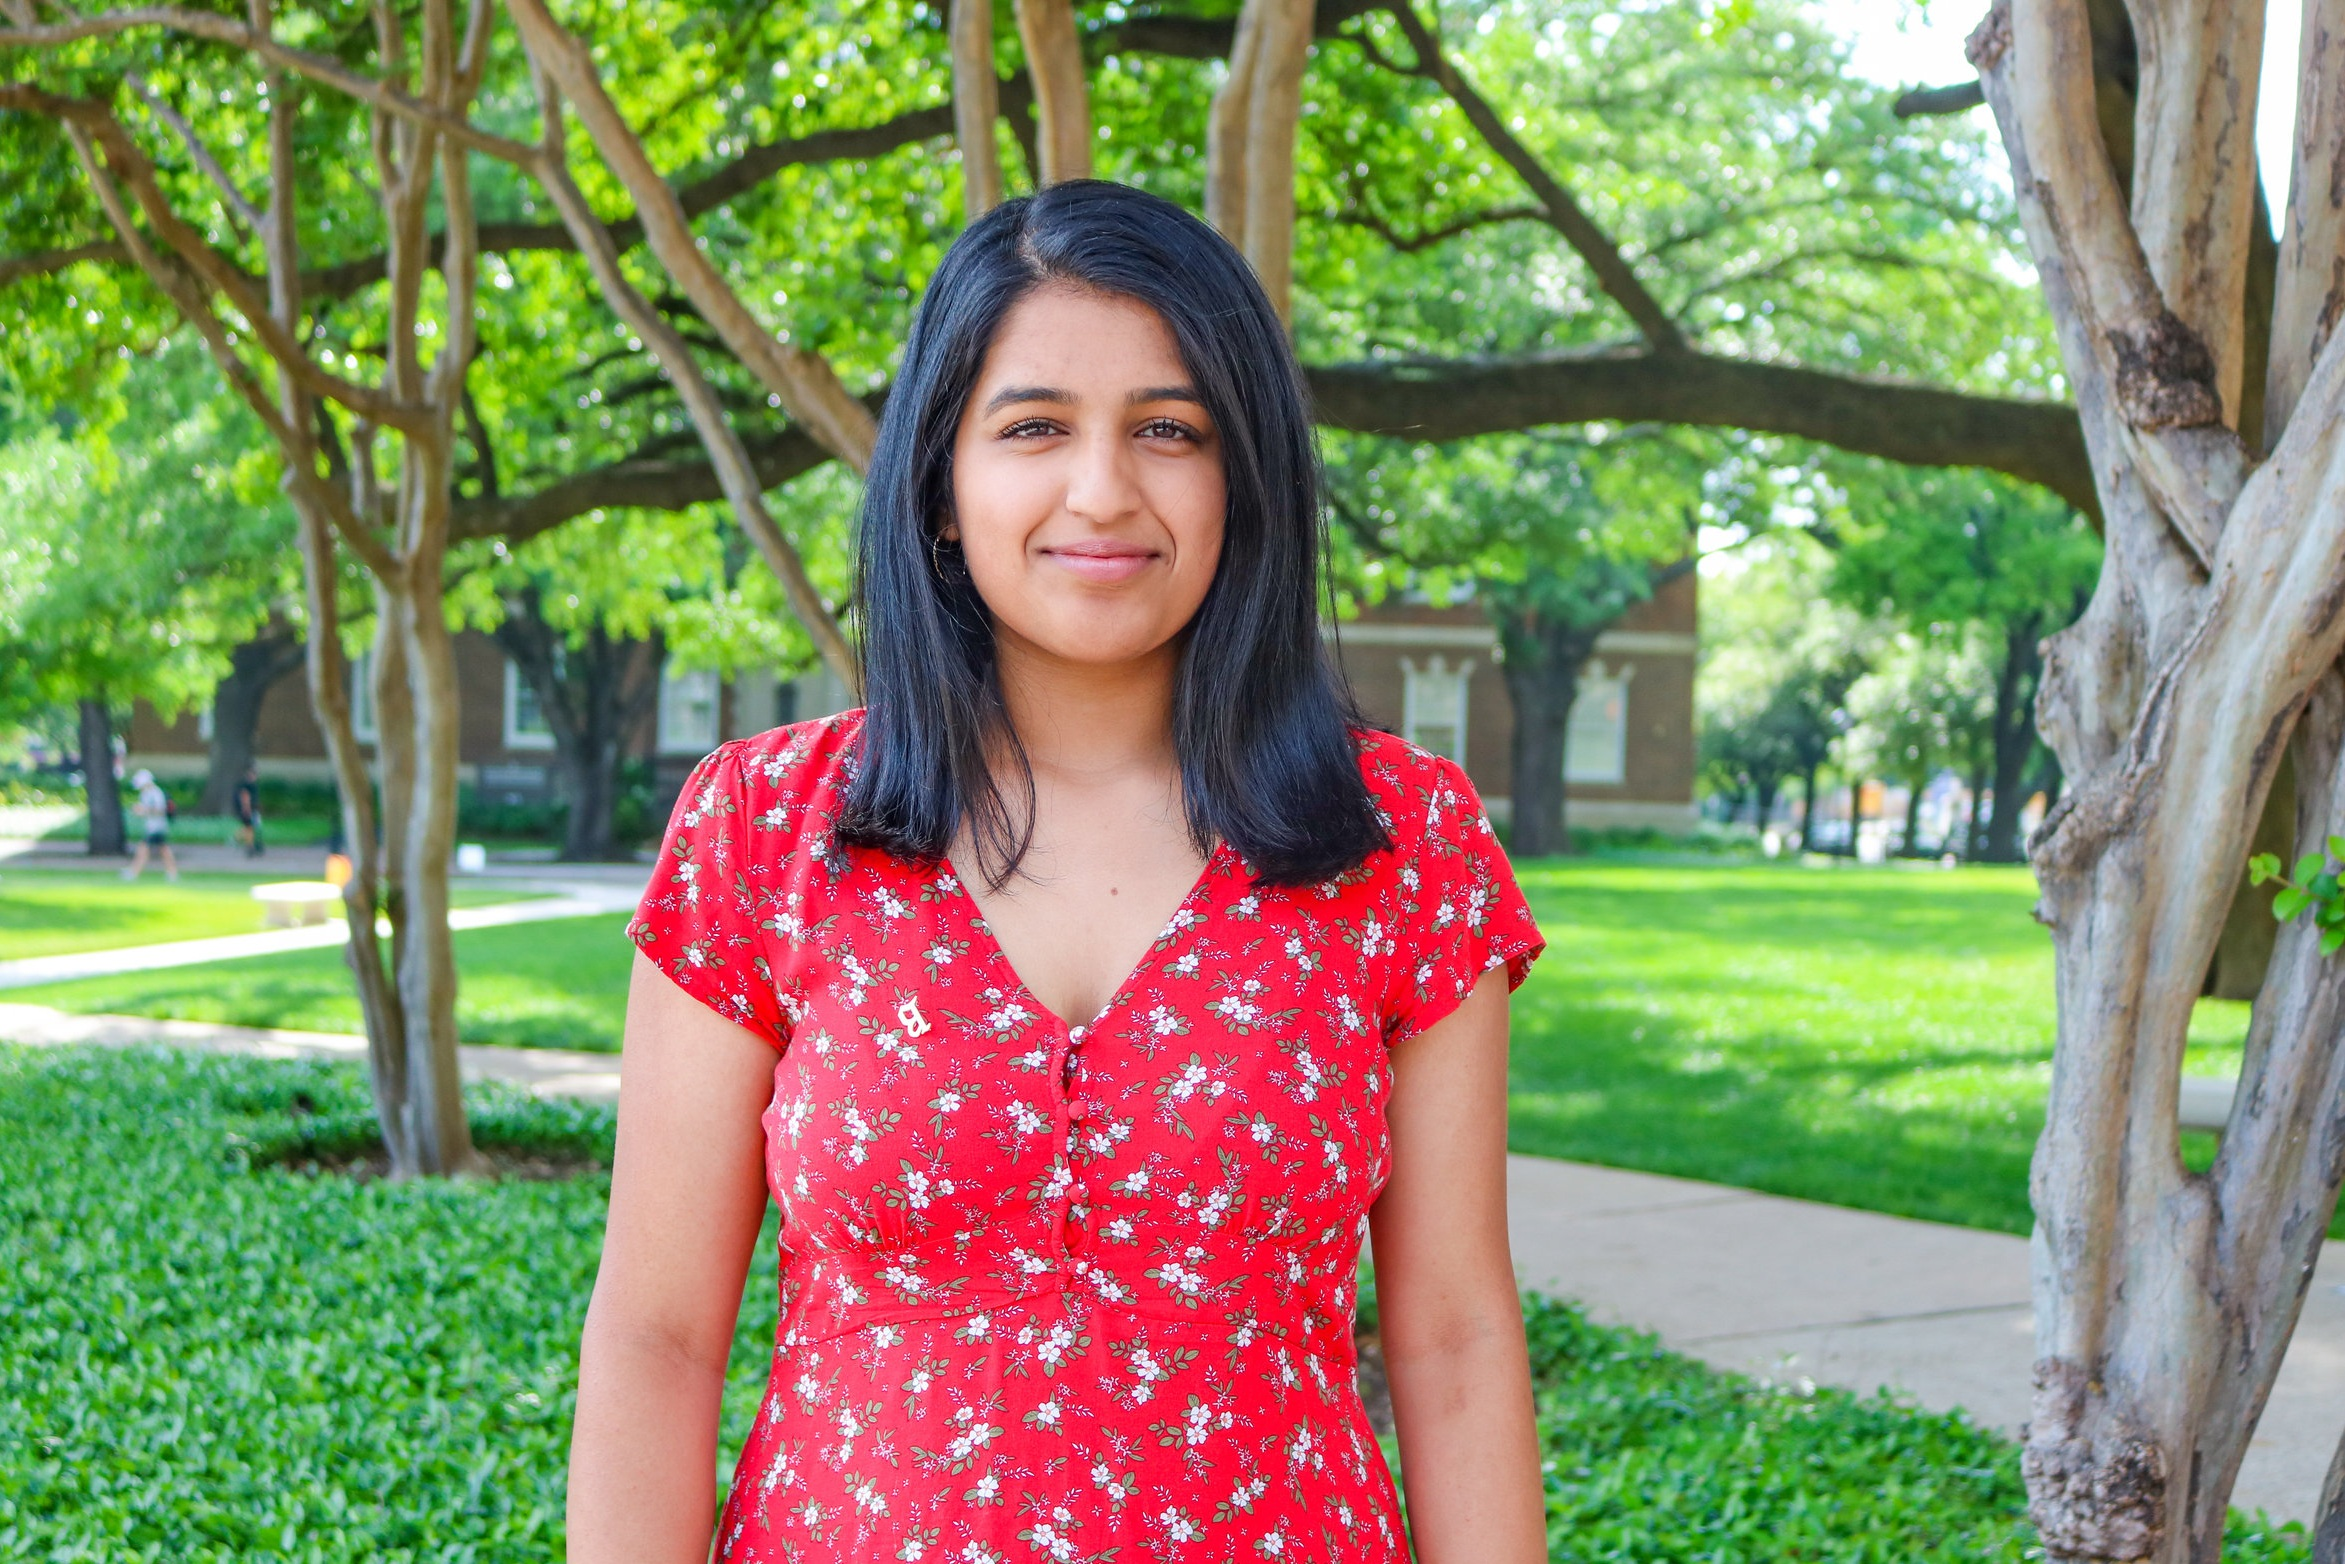 Pallavi is a sophomore from Morrisville, North Carolina. She is majoring in Finance and Markets & Culture and dreams of doing financials for celebrities. Her favorite memory in Boaz is movie nights with her friends and her favorite Boaz event is Sonday Night Snacks. Pallavi is also a part of Program Council and her favorite Wake Up Wednesday is biscuits and gravy.